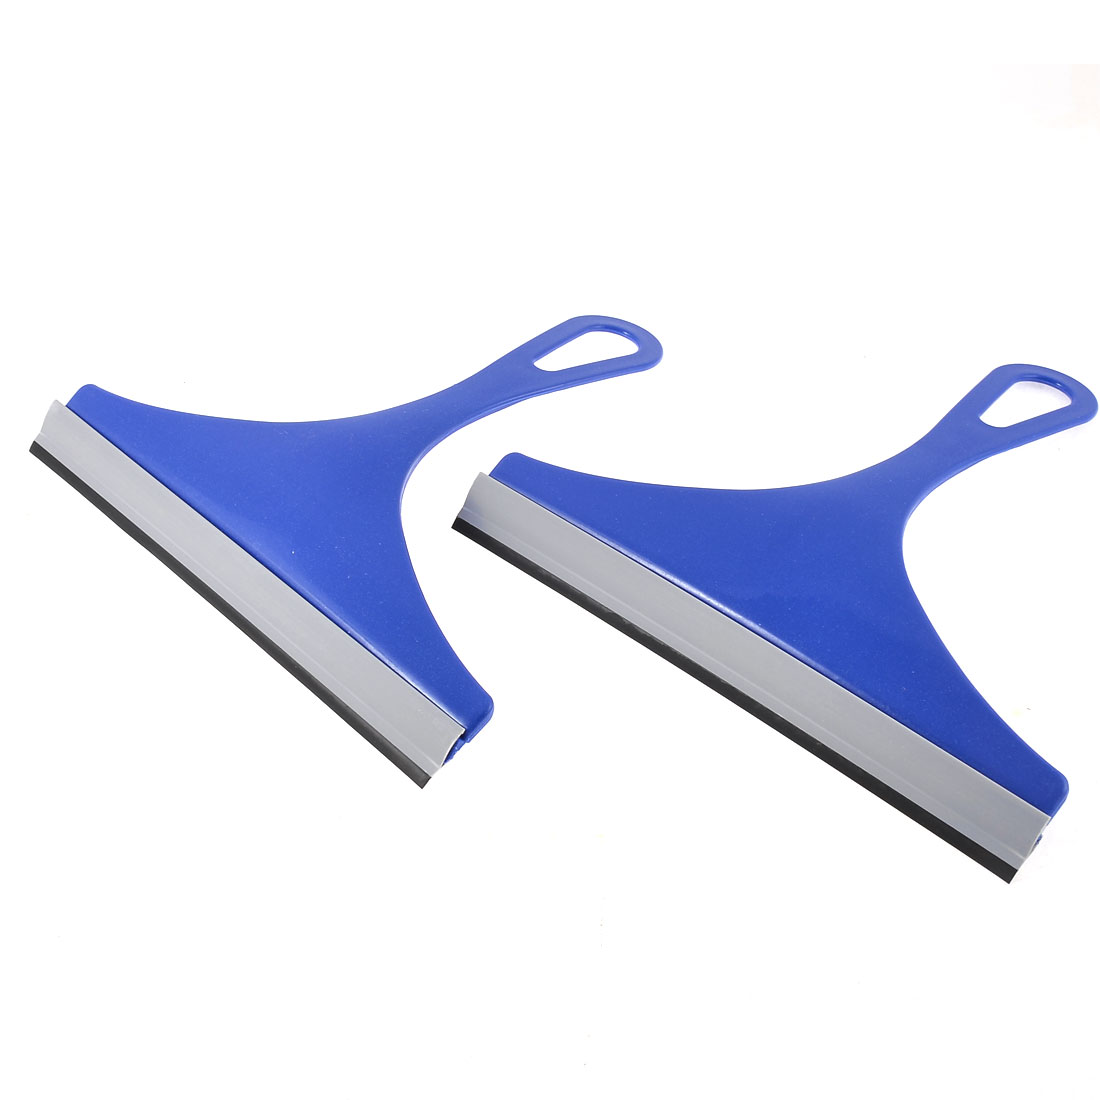 Kitchen Home Window Glass Mirror Brush Sraper Wiper Squeegee Blue 2pcs